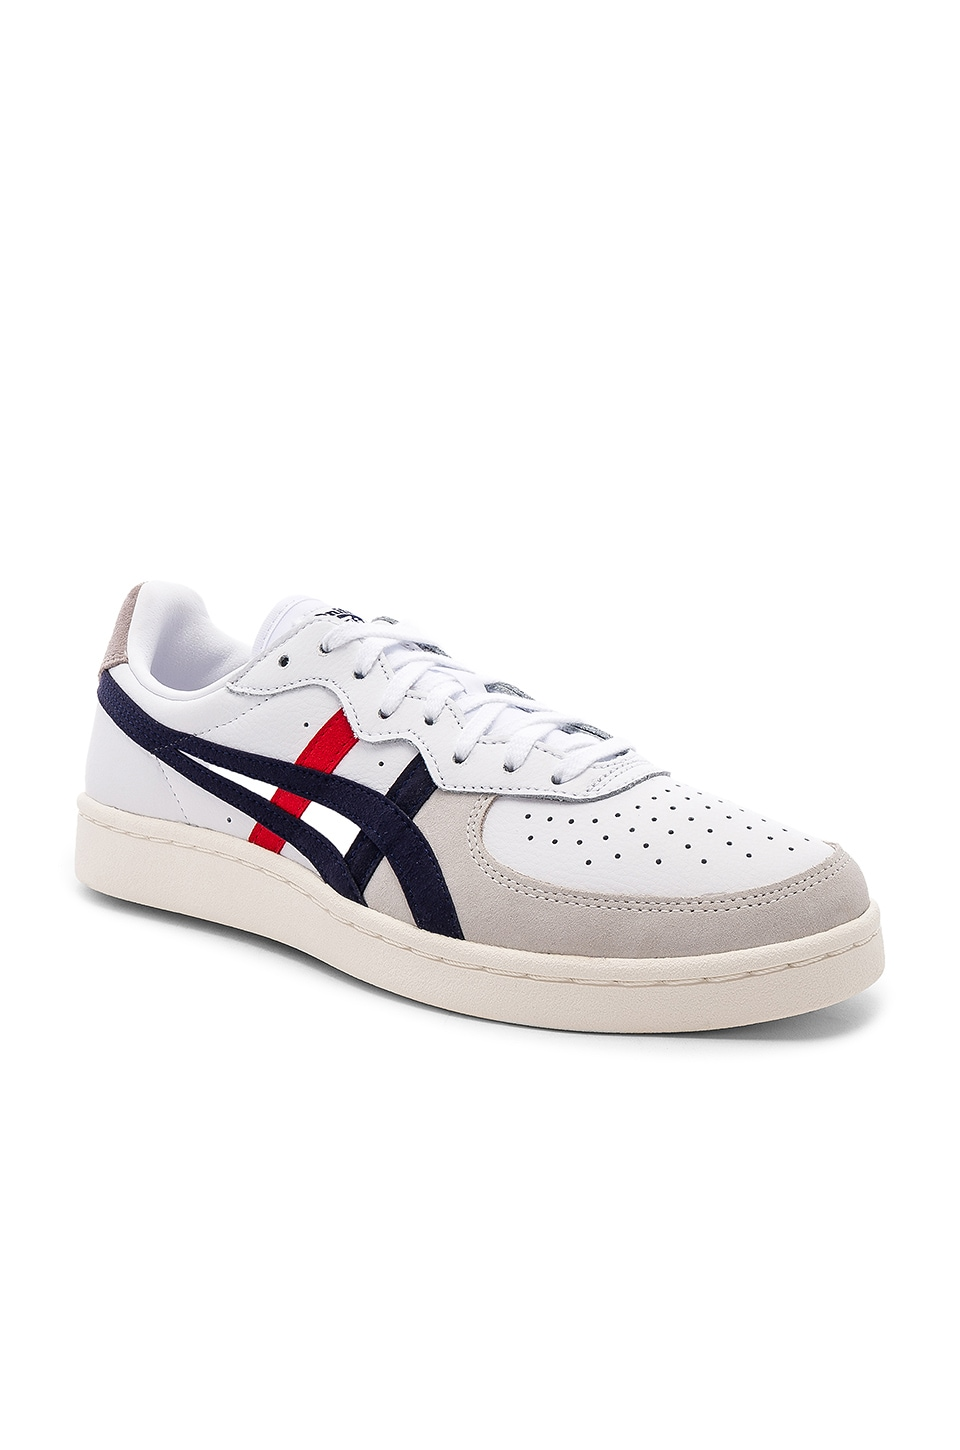 Onitsuka Tiger GSM in White & Peacoat